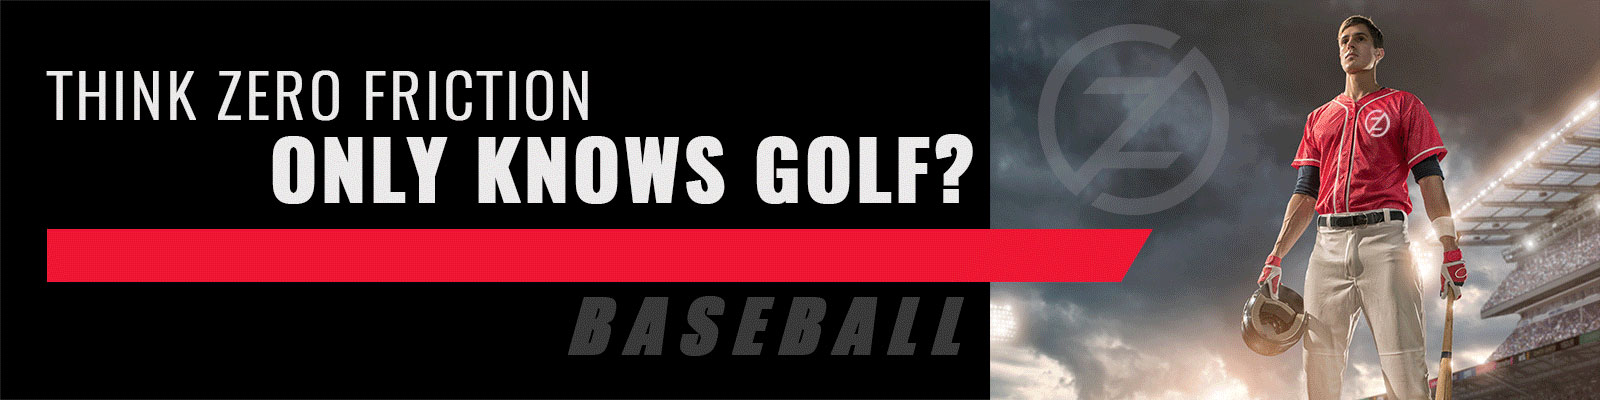 Think Zero Friction Only Knows Golf?